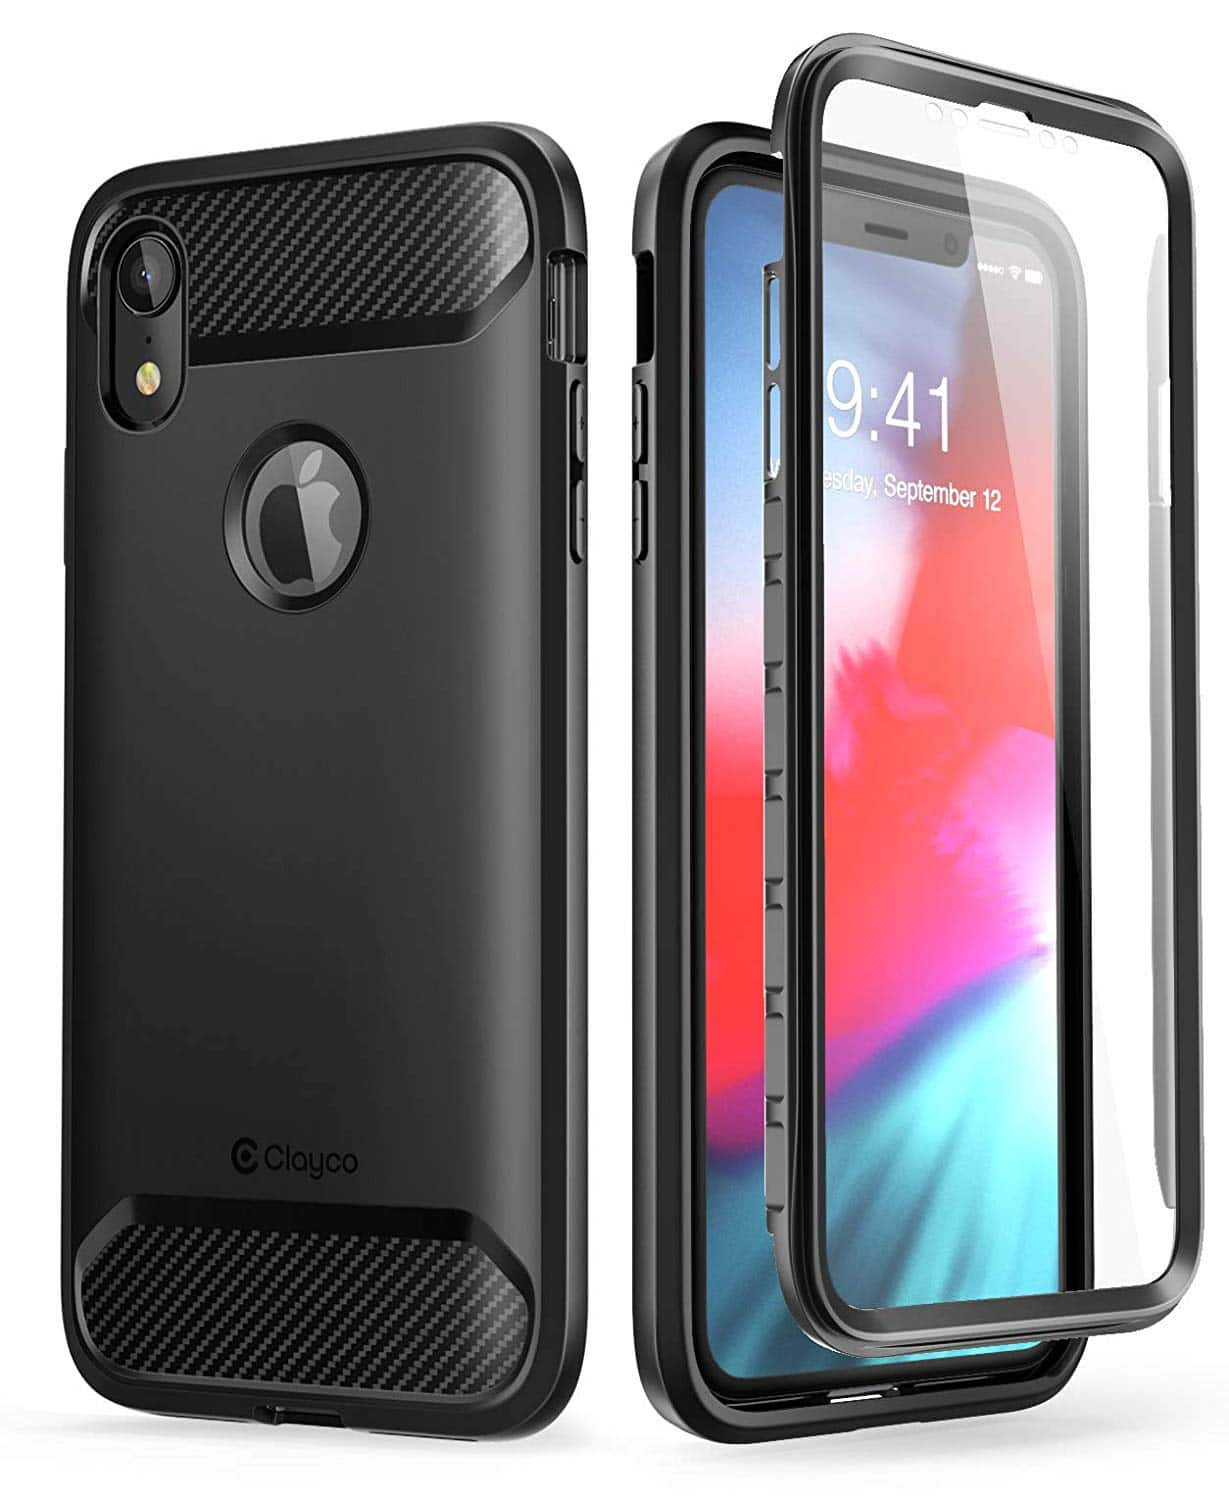 Iphone Xr Cell Phone Case 3 60 Free Shipping Slickdeals Net